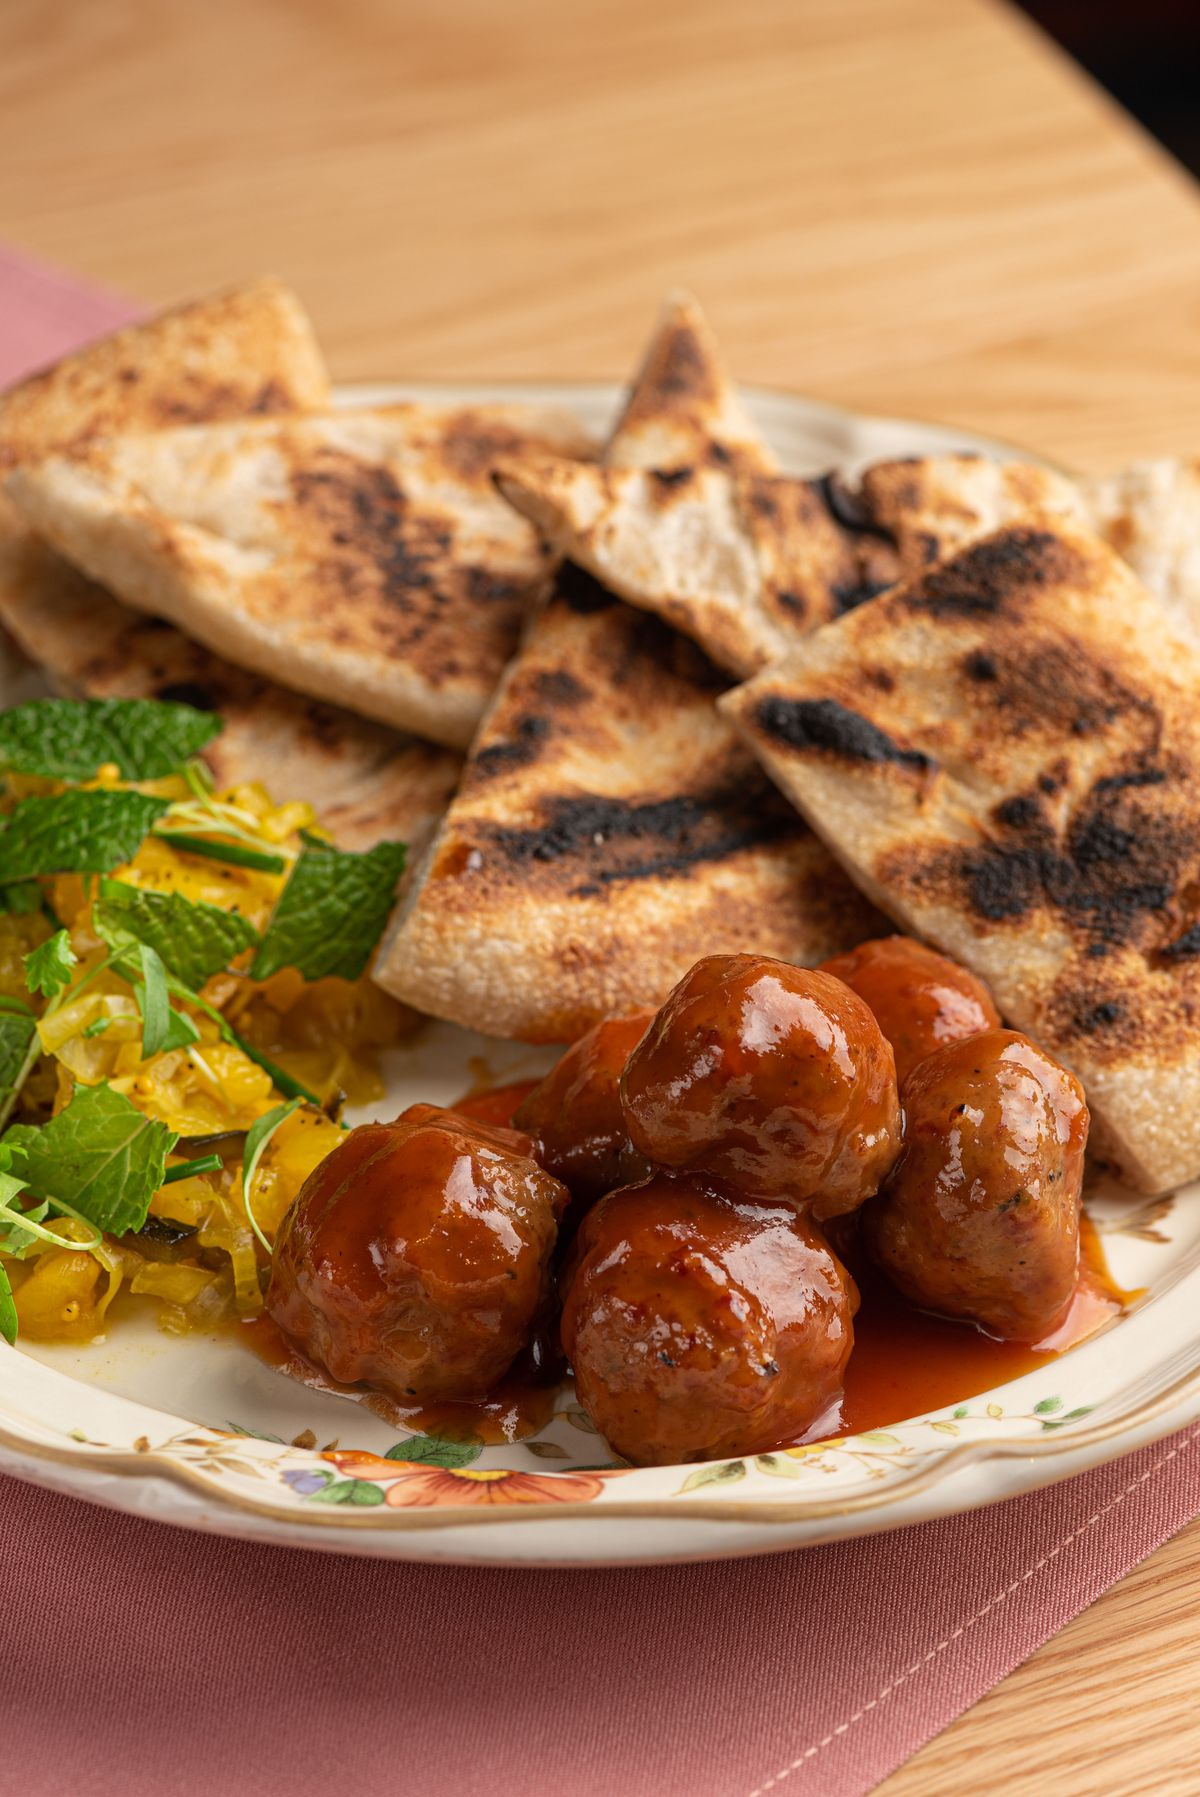 Small glazed brown bites of ham with blistered flatbread around the sides.